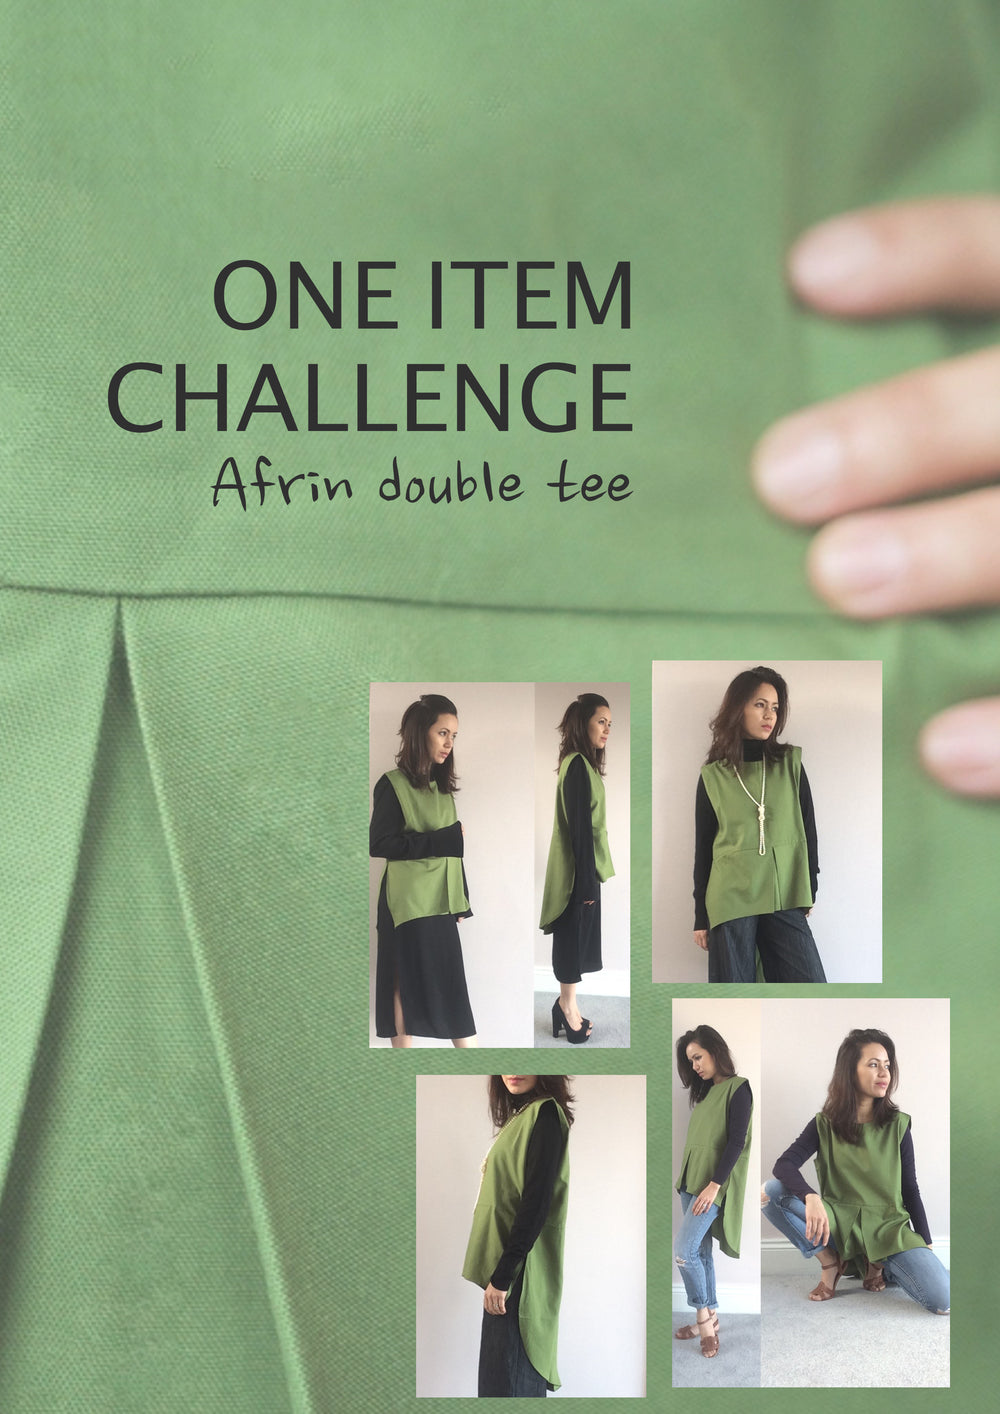 One item challenge - Afrin double tee